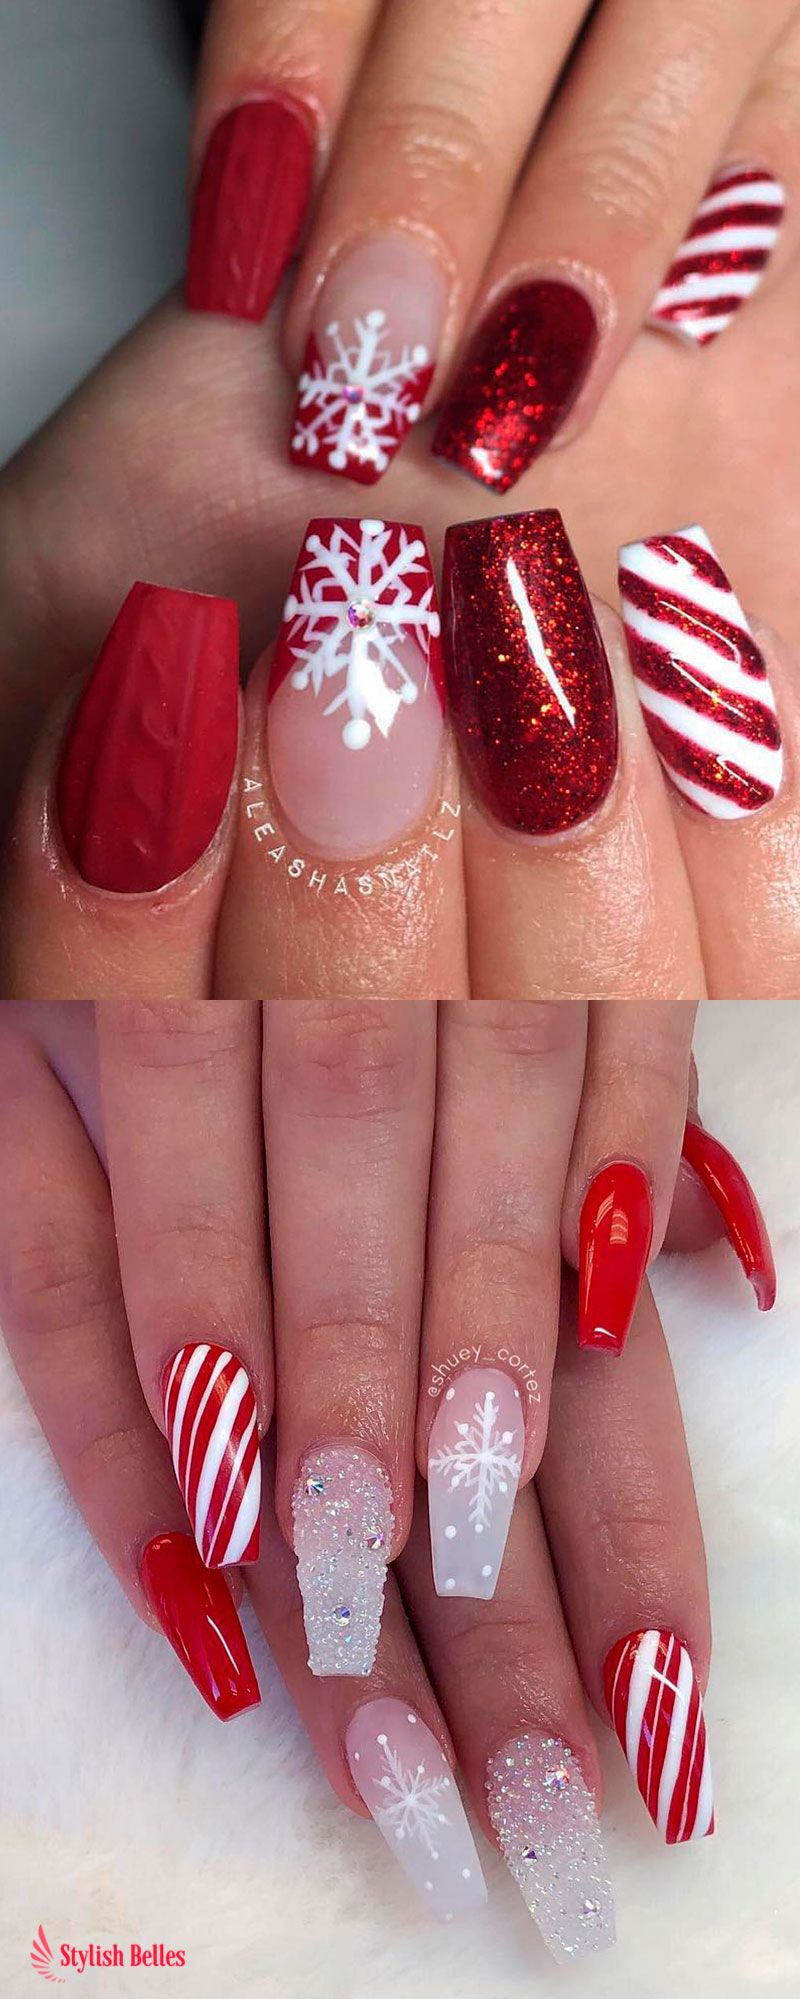 The Cutest And Festive Christmas Nail Designs For Celebration Design Nehtu Umele Nehty Gelove Nehty